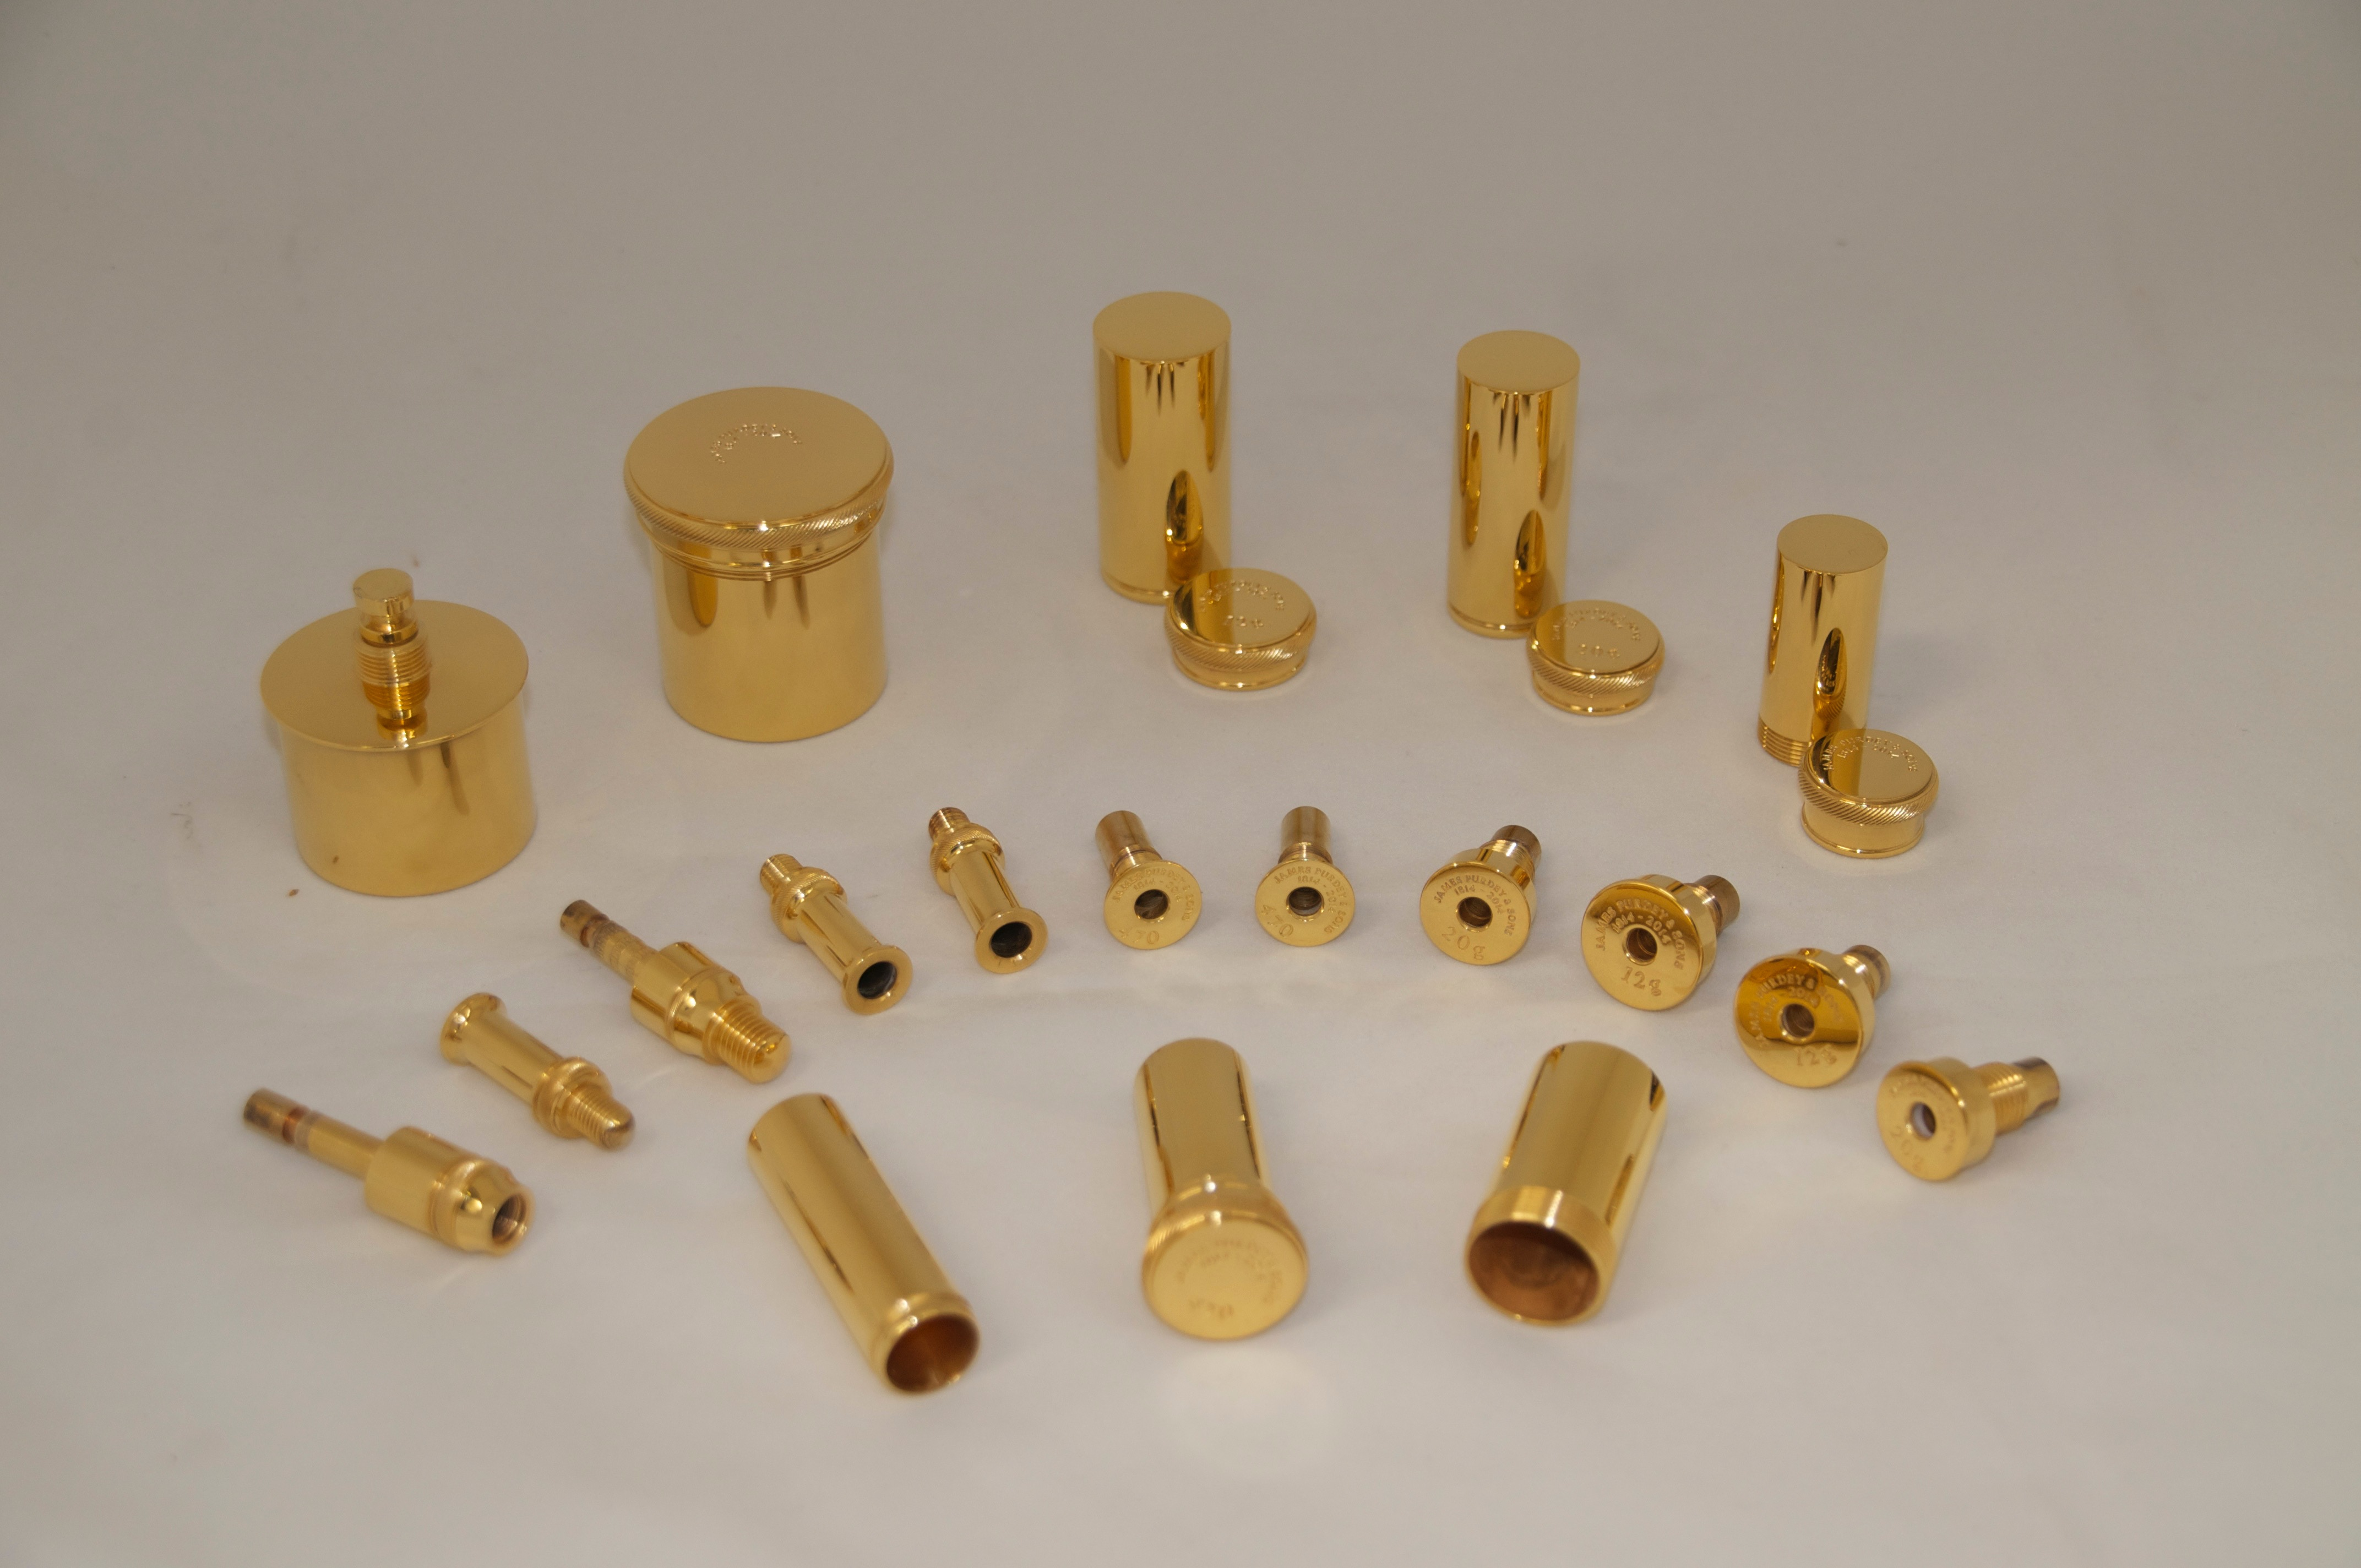 gold plated Purdy gun set